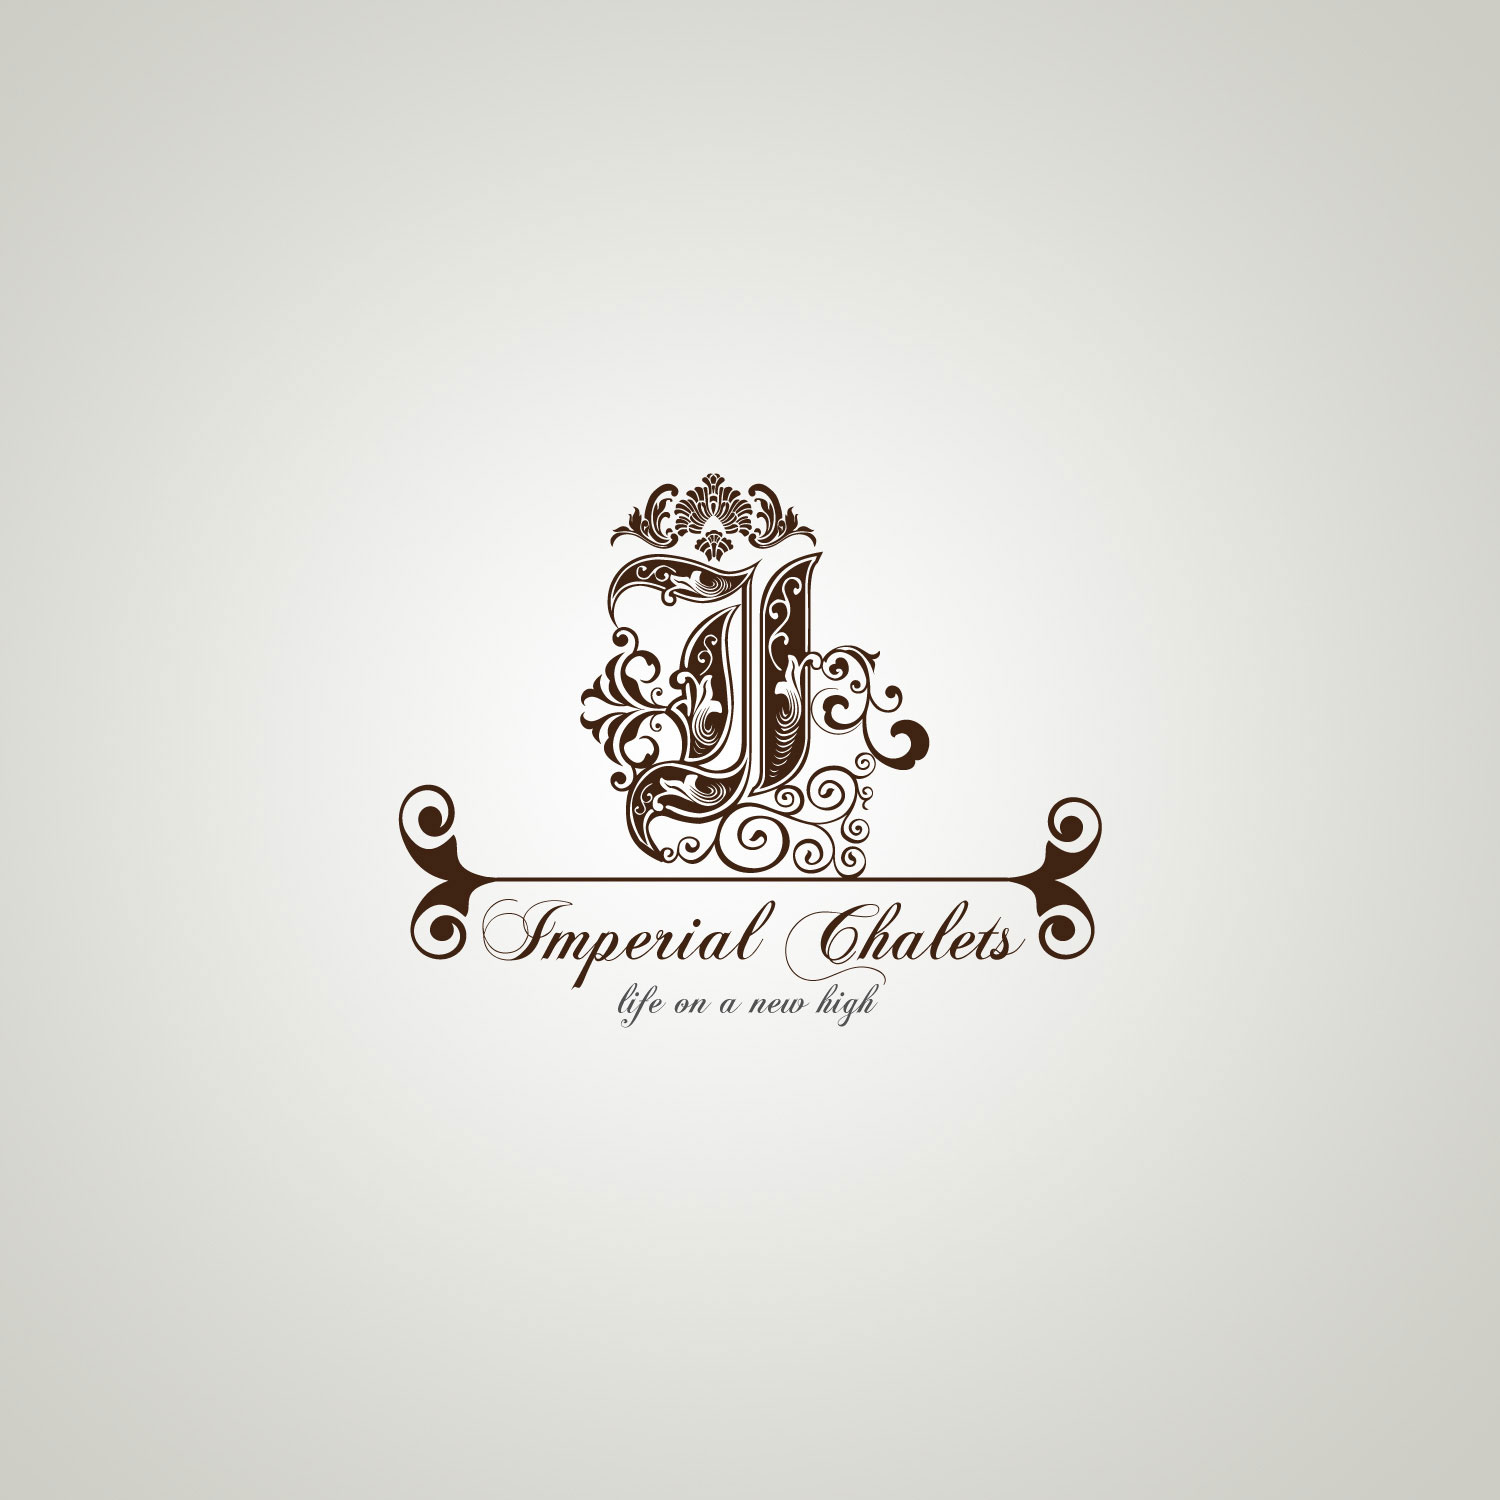 Imperial Chalets Branding Amp Signage Advertising Logo